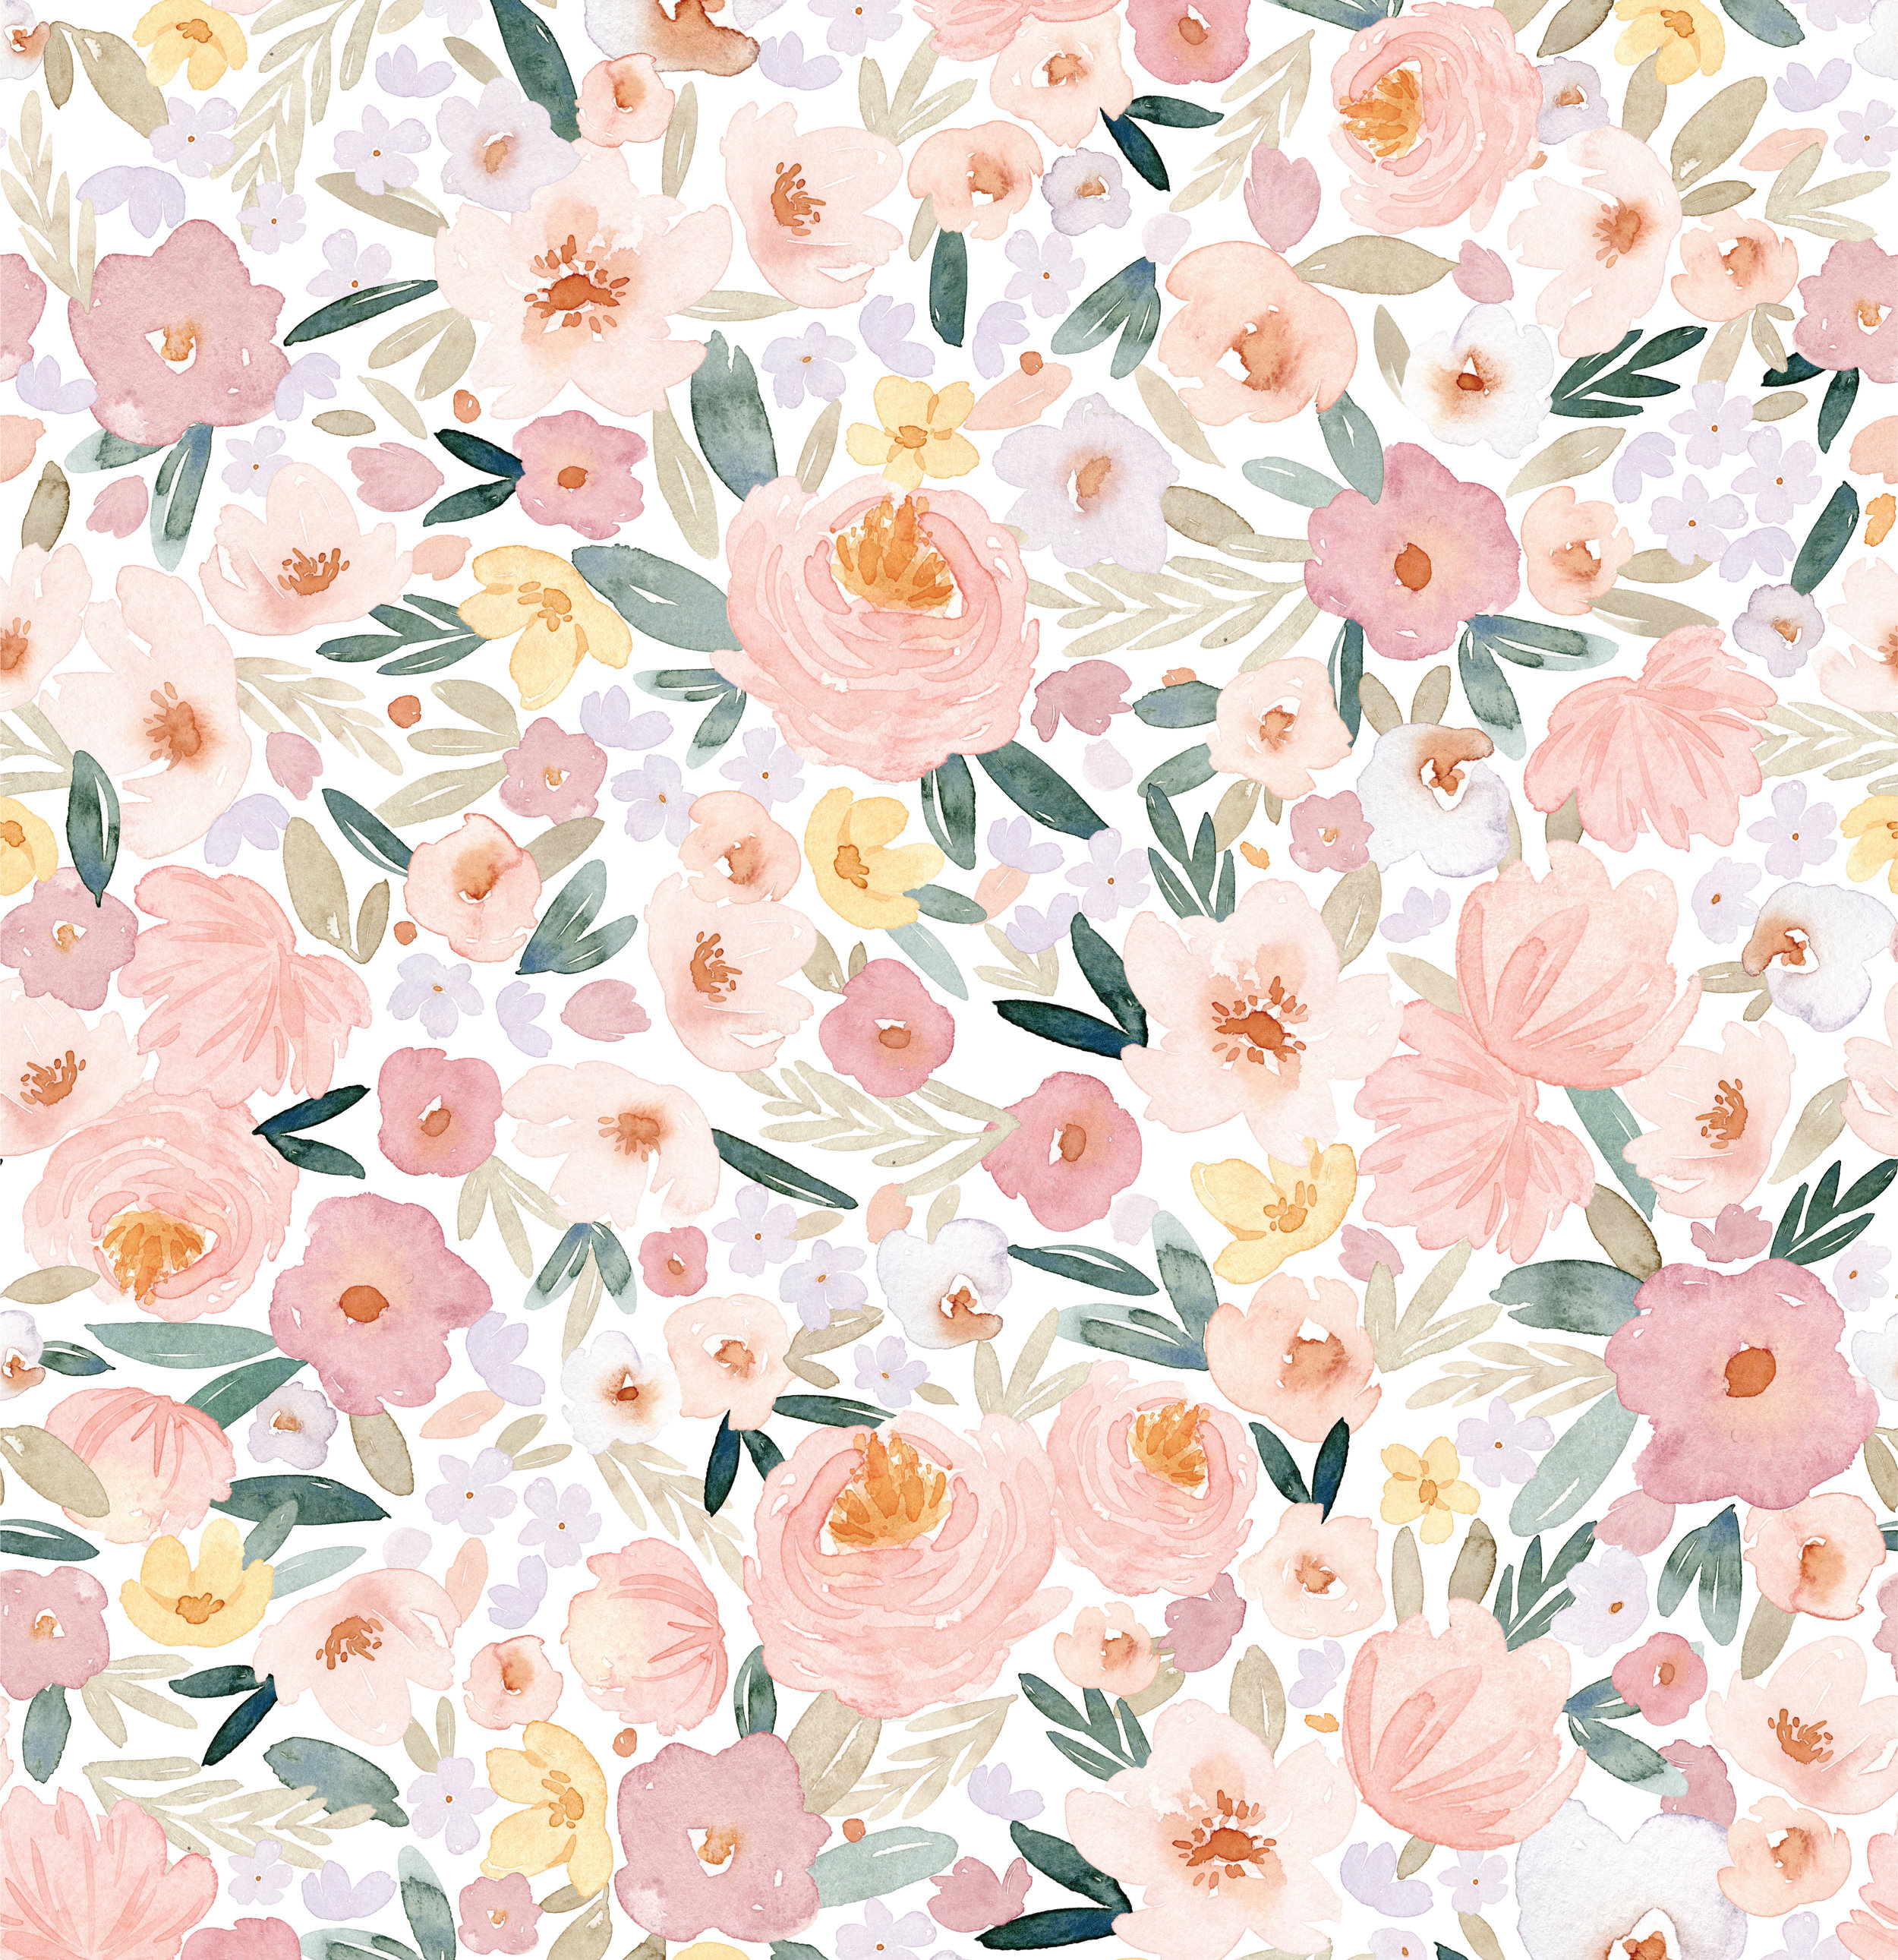 February floral pattern_repeat-01.jpg